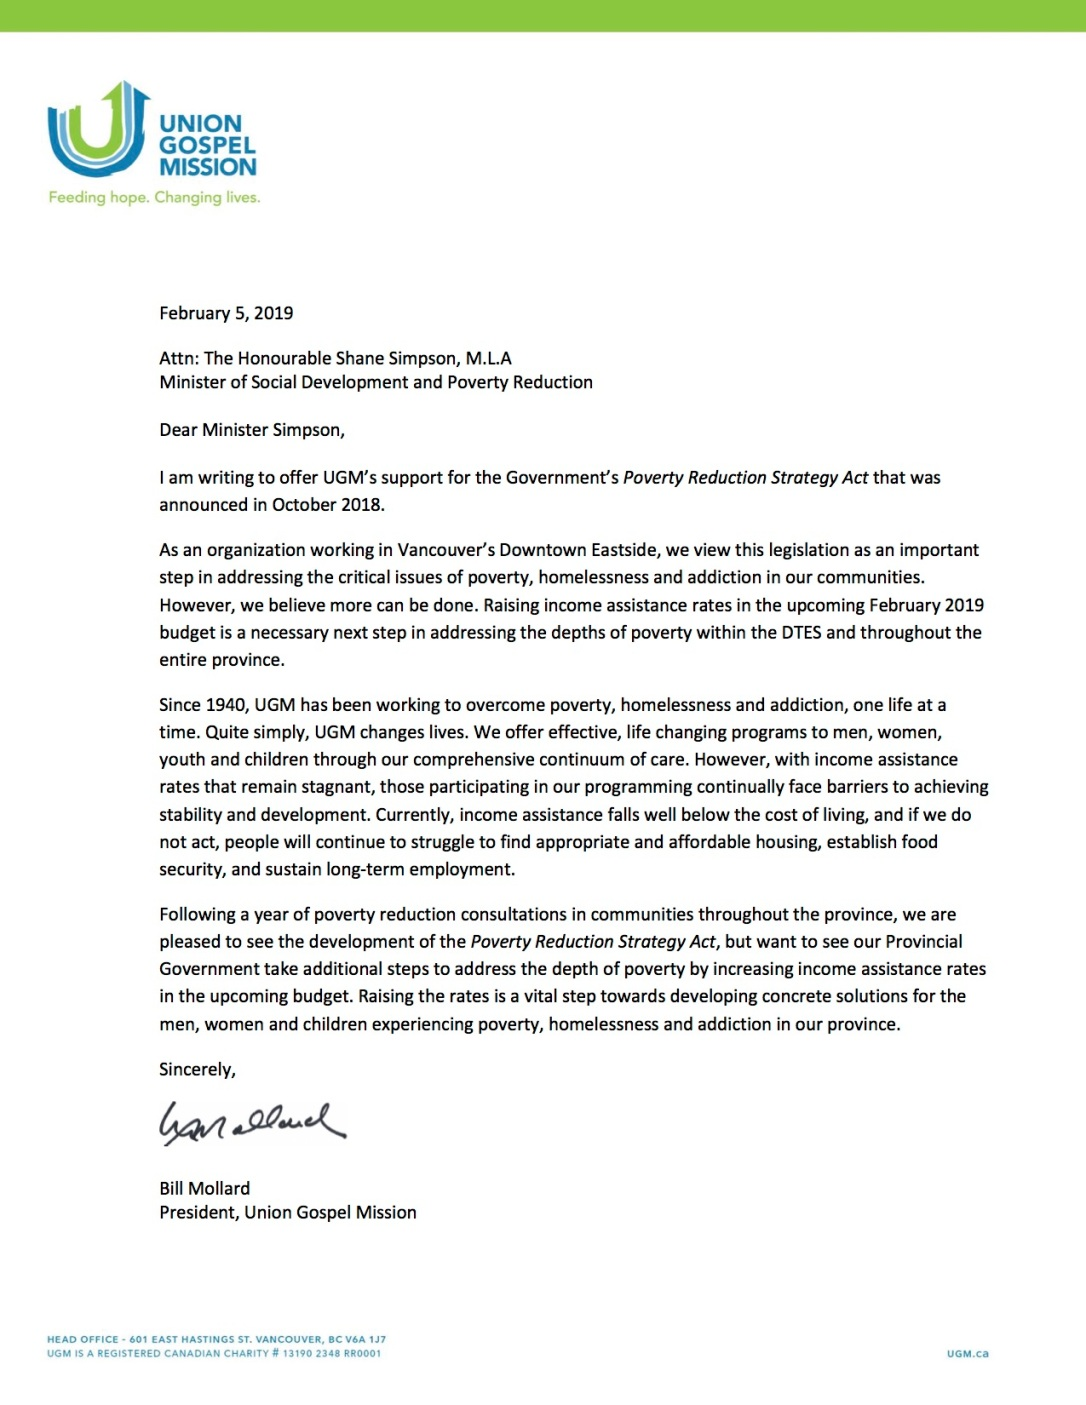 Letter of Support - Raise the Rates (1).jpg